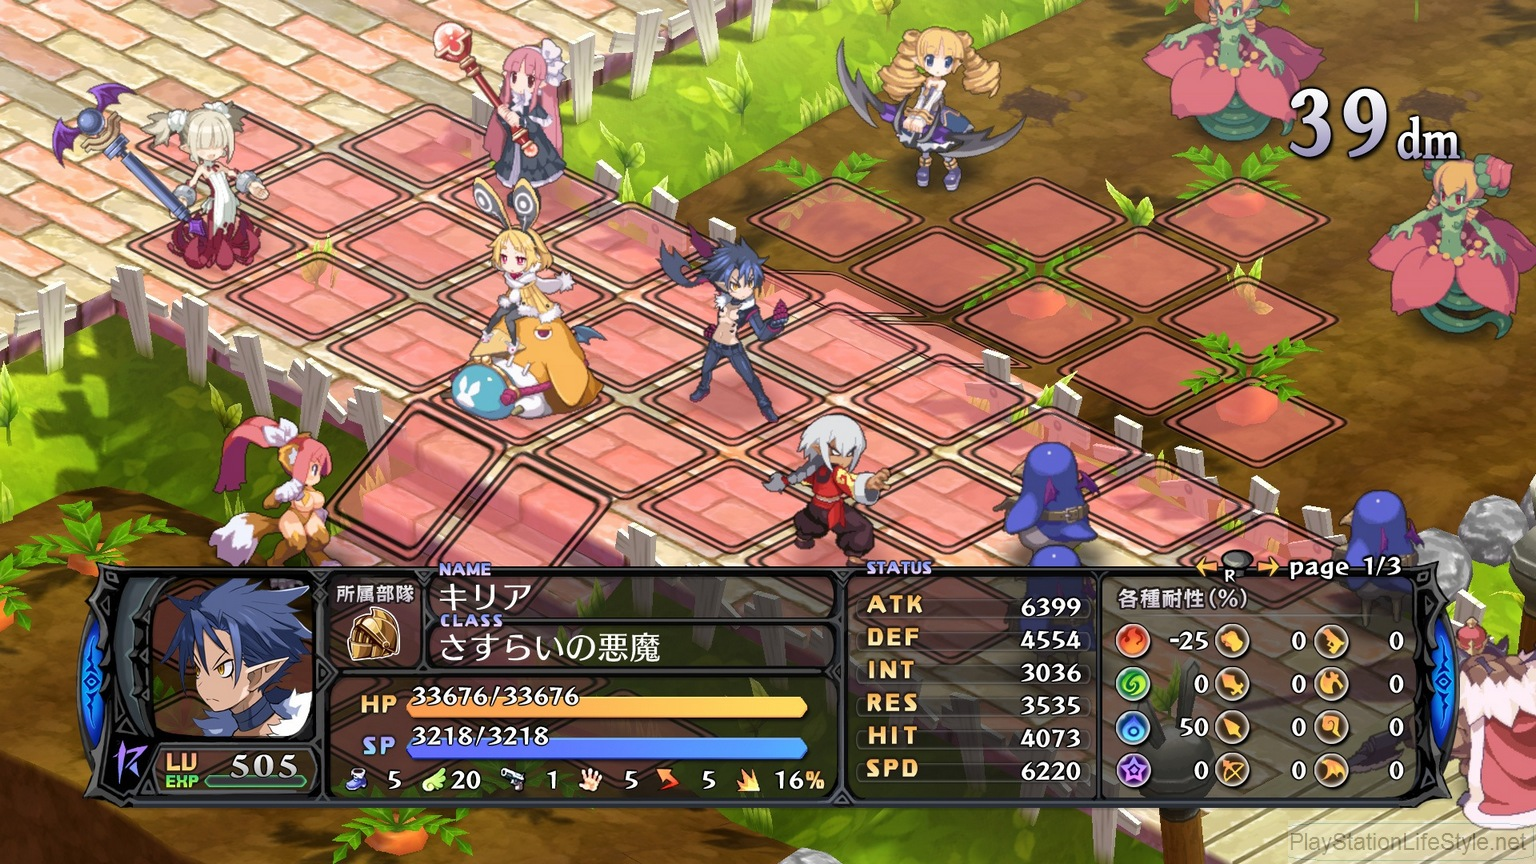 disgaea-5-ps4-images-picture001_0